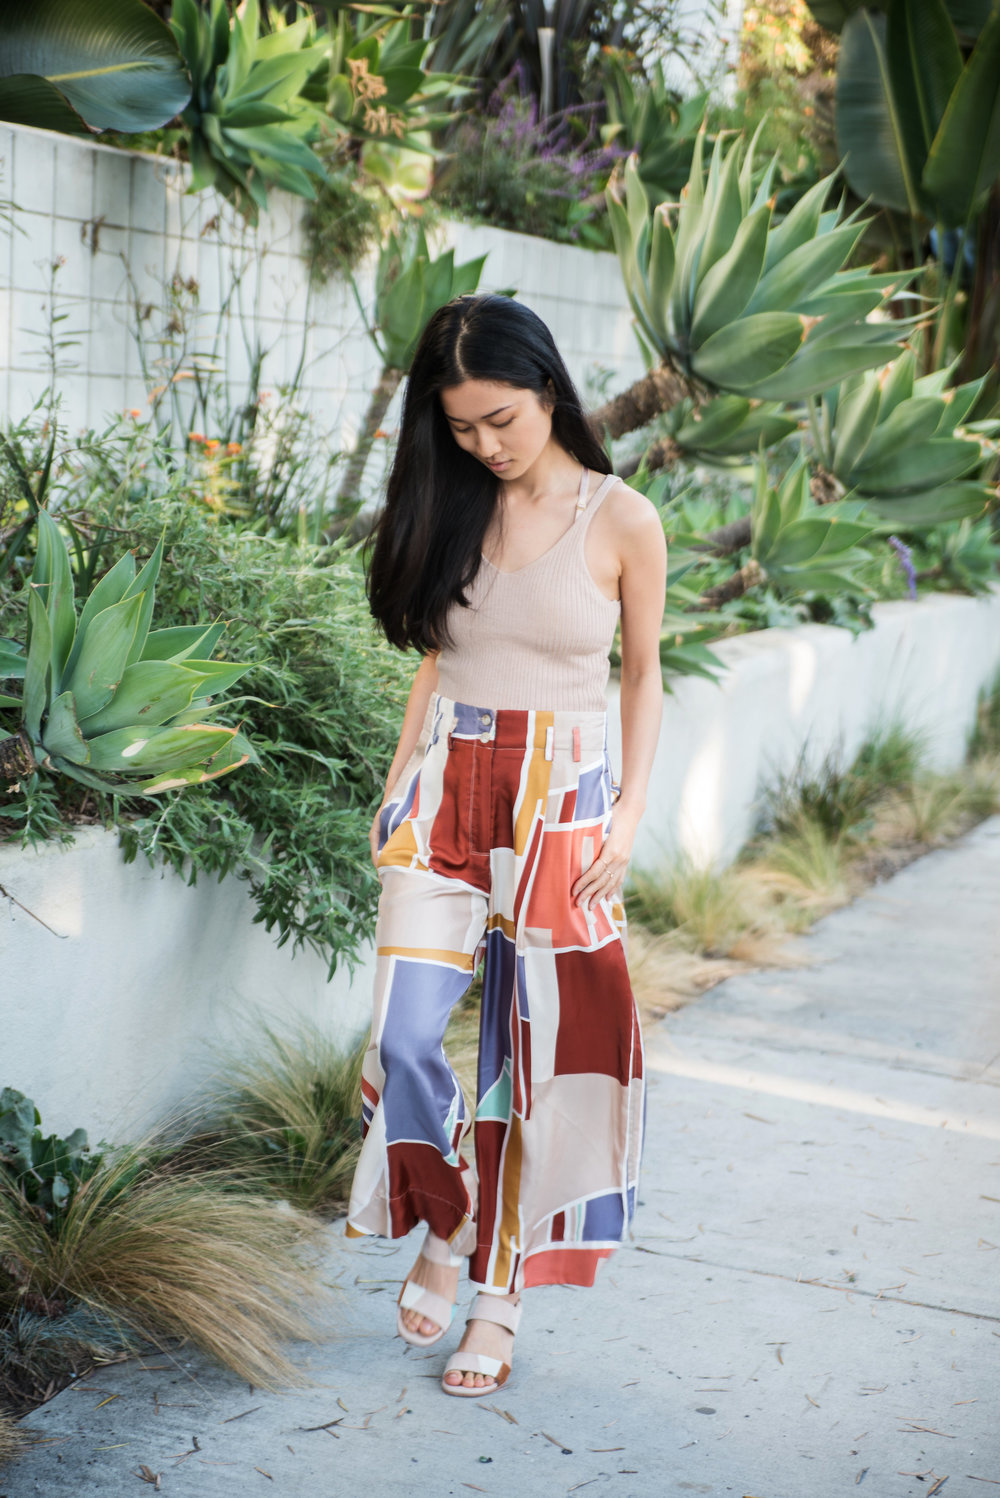 Sustainable Fashion Brands | Eco Fashion Blogger Kaméa Chayne